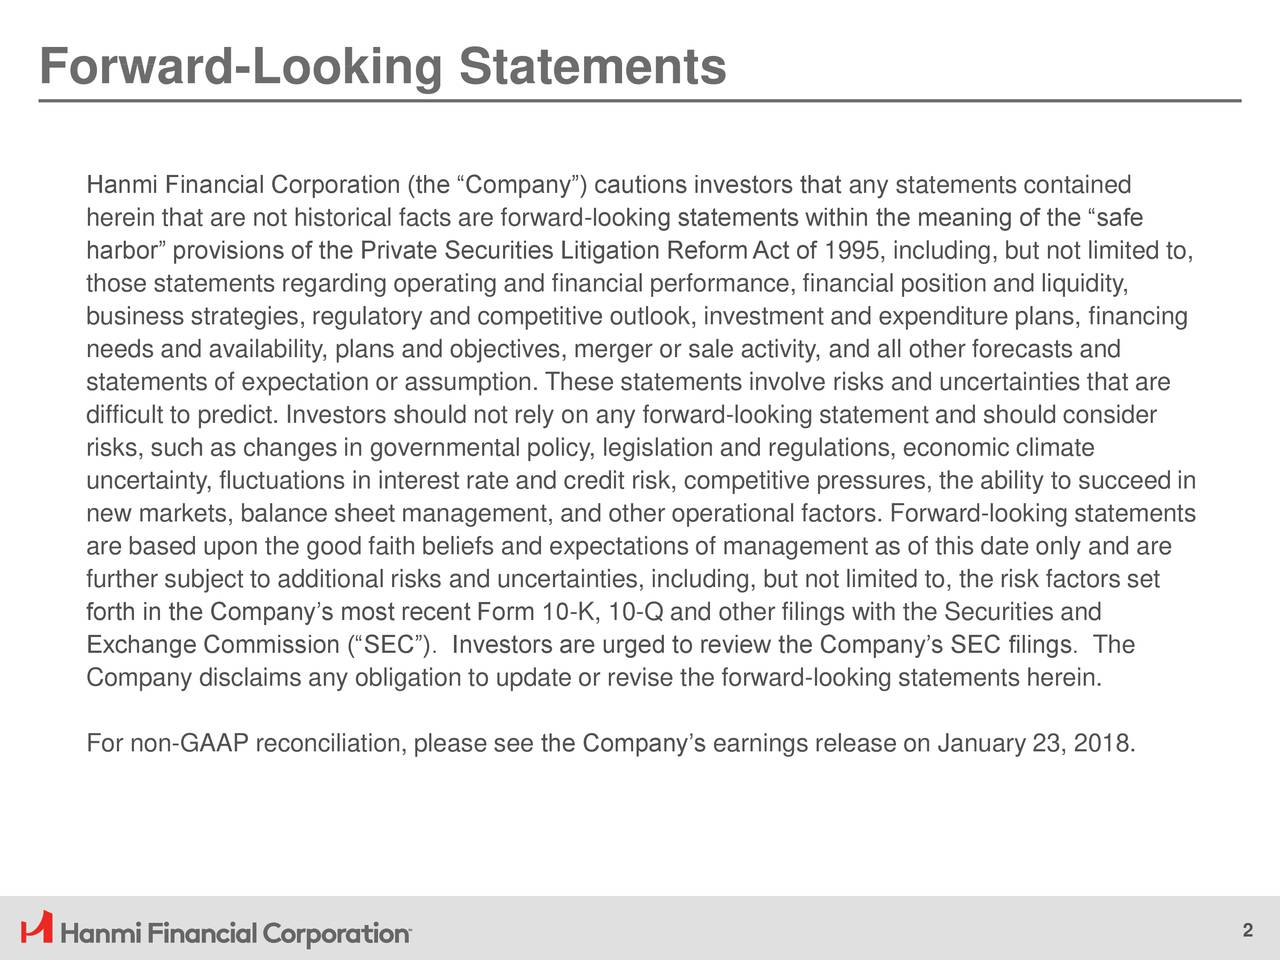 """Hanmi Financial Corporation (the """"Company"""") cautions investors that any statements contained herein that are not historical facts are forward-looking statements within the meaning of the """"safe harbor"""" provisions of the Private Securities Litigation Reform Act of 1995, including, but not limited to, those statements regarding operating and financial performance, financial position and liquidity, business strategies, regulatory and competitive outlook, investment and expenditure plans, financing needs and availability, plans and objectives, merger or sale activity, and all other forecasts and statements of expectation or assumption. These statements involve risks and uncertainties that are difficult to predict. Investors should not rely on any forward-looking statement and should consider risks, such as changes in governmental policy, legislation and regulations, economic climate uncertainty, fluctuations in interest rate and credit risk, competitive pressures, the ability to succeed in new markets, balance sheet management, and other operational factors. Forward-looking statements are based upon the good faith beliefs and expectations of management as of this date only and are further subject to additional risks and uncertainties, including, but not limited to, the risk factors set forth in the Company's most recent Form 10-K, 10-Q and other filings with the Securities and Exchange Commission (""""SEC""""). Investors are urged to review the Company's SEC filings. The Company disclaims any obligation to update or revise the forward-looking statements herein. For non-GAAP reconciliation, please see the Company's earnings release on January 23, 2018. 2"""